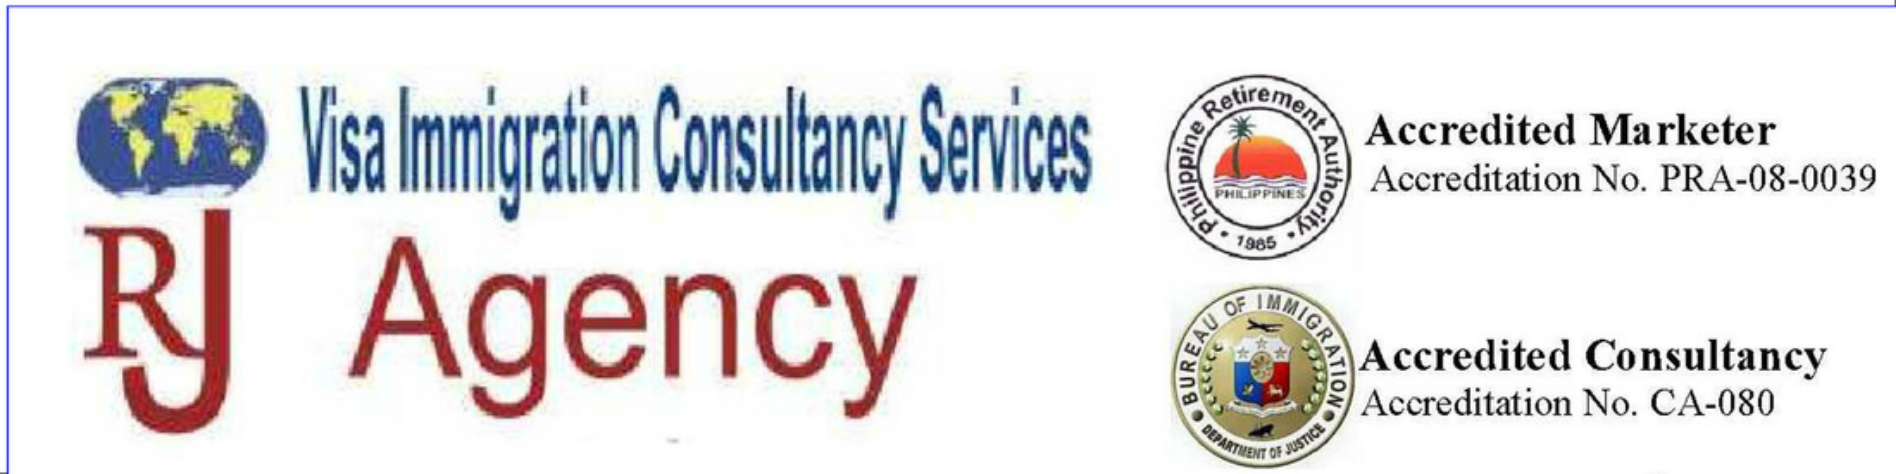 RJAgency Visa Immigration Consultancy Services